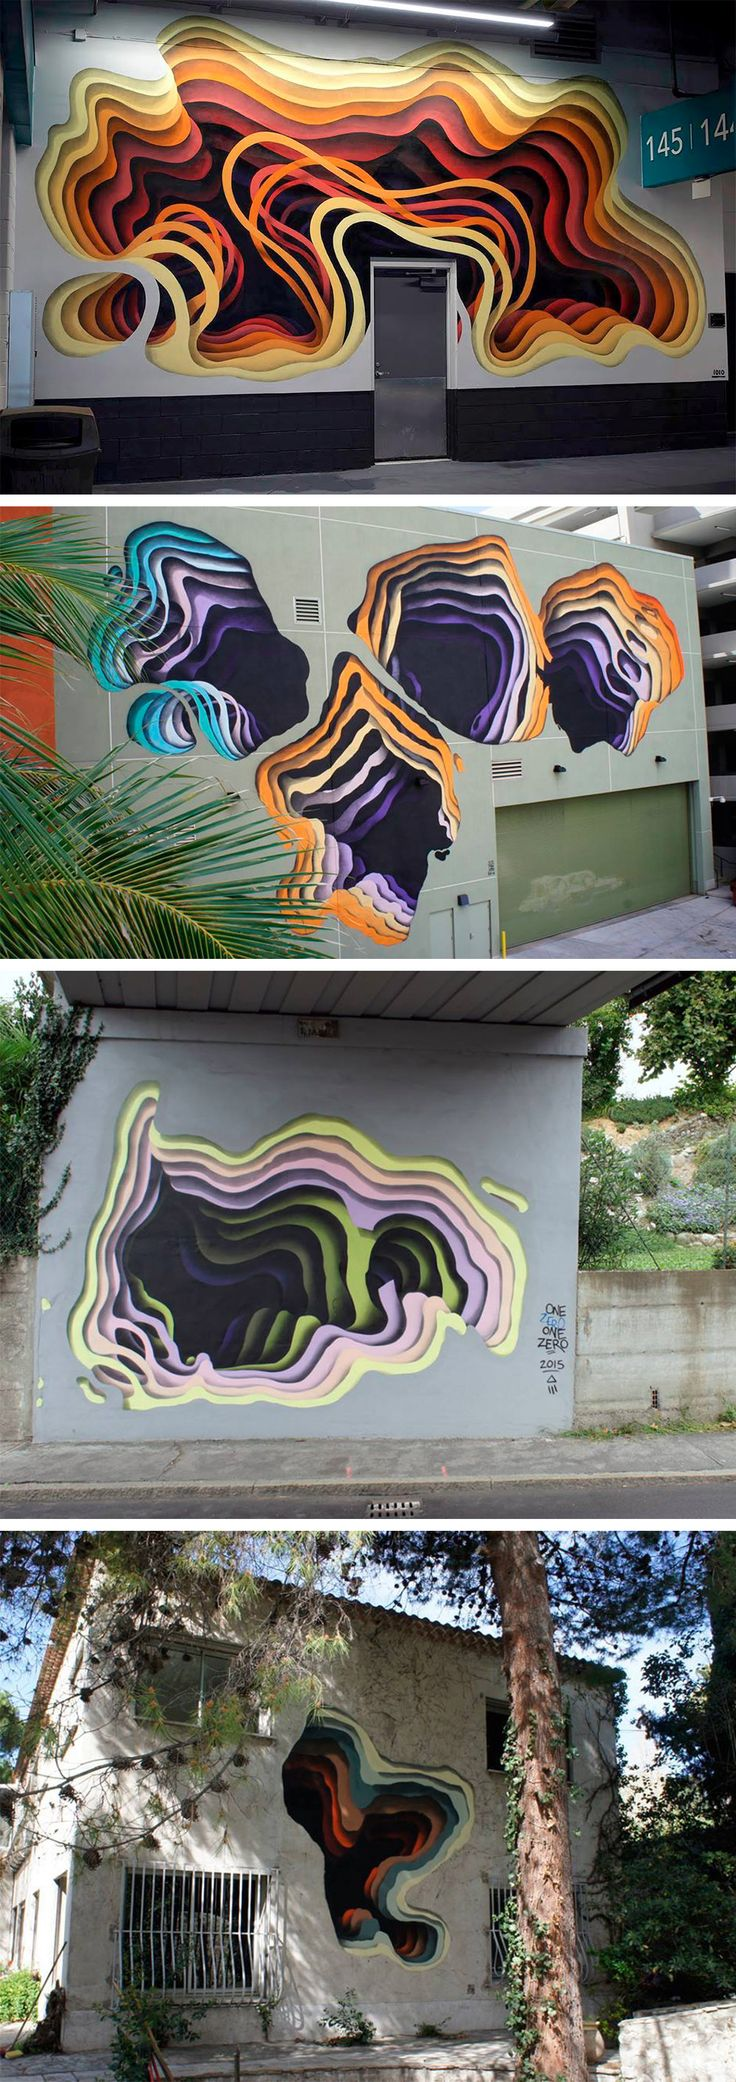 New Cavernous Murals by German Street Artist '1010' Muro con capas de colores, pared